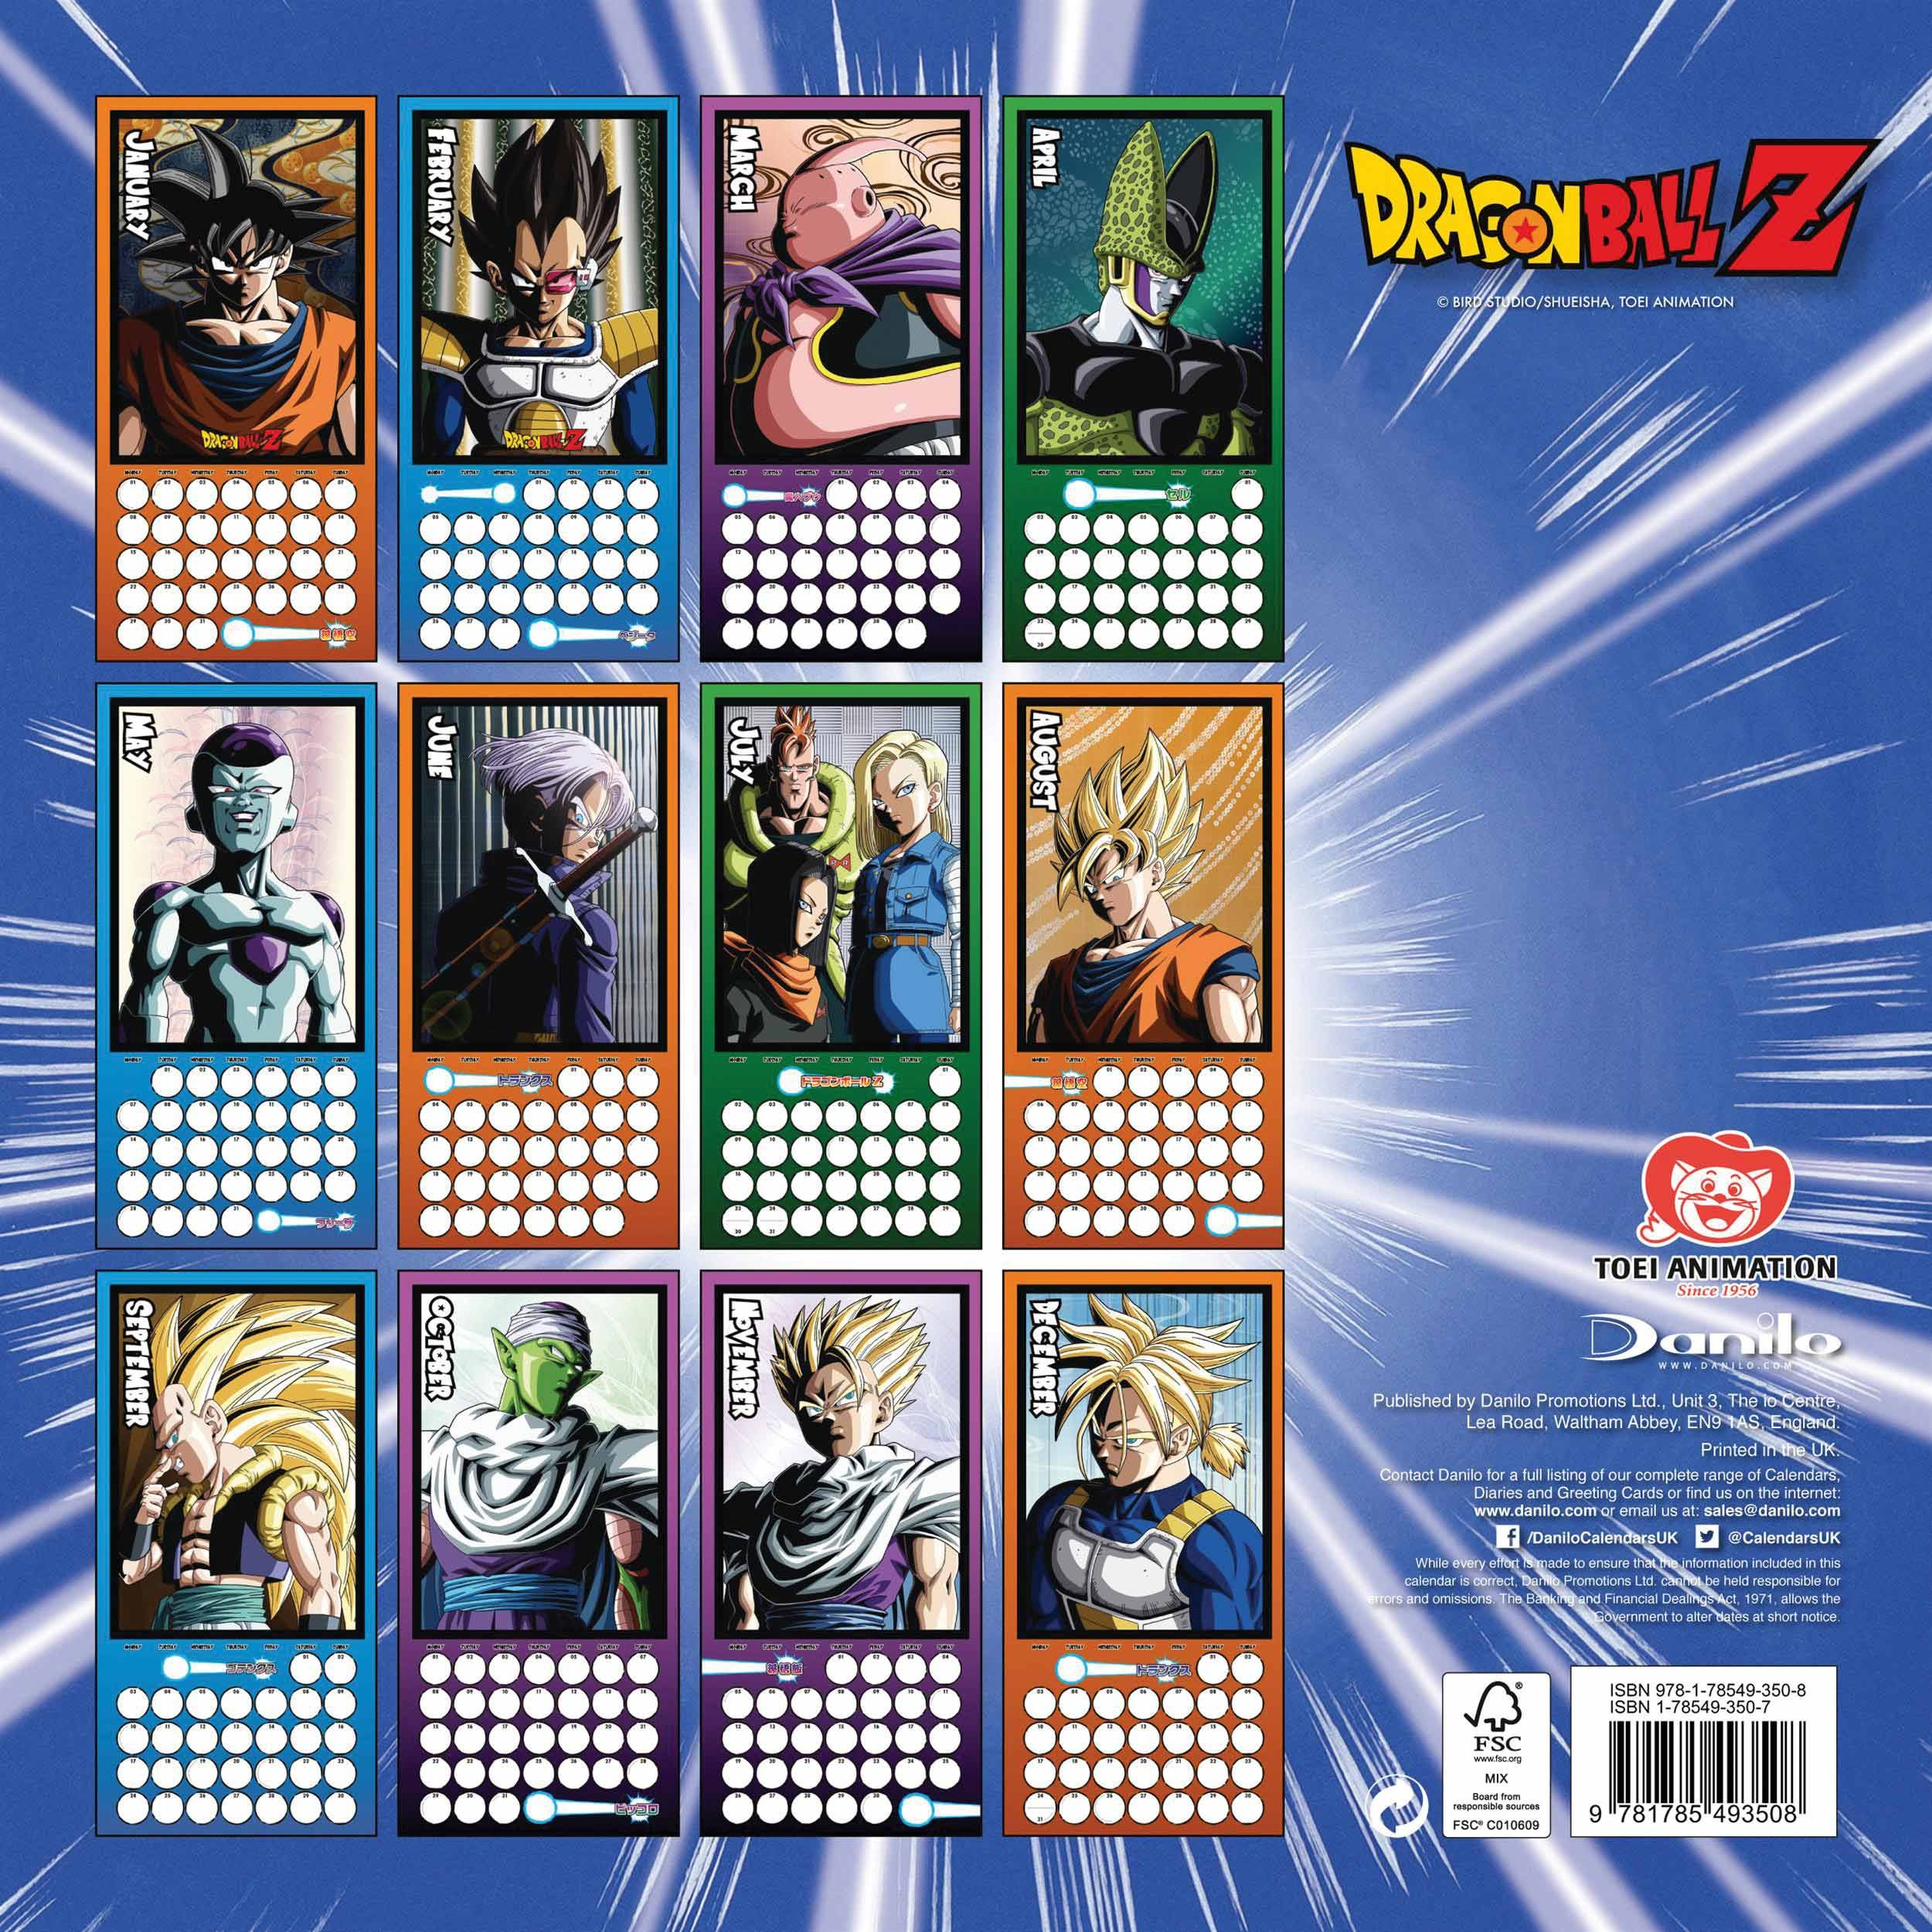 Dragon Ball Z Official Wall Calendar 2018 - Square Format, 2018 Wall Dragon Ball Z Calendar 2019